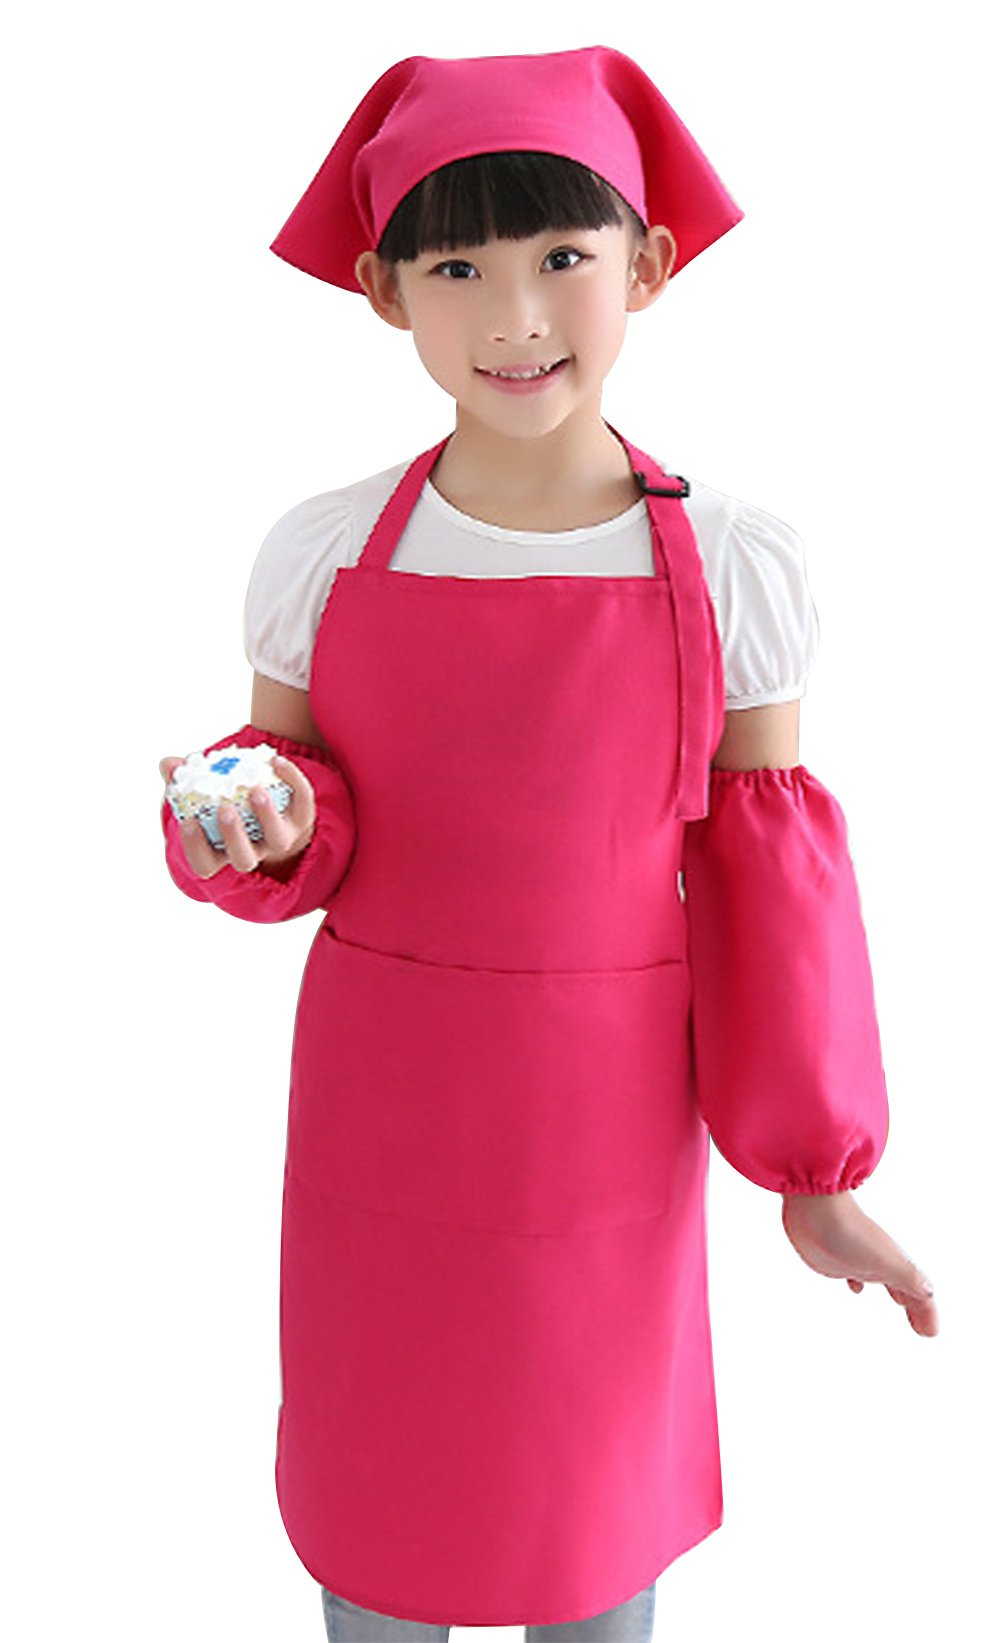 Happy Cherry Children's 3pc Solid Color Painting Crafts Aprons Smock with 2 Pockets & Sleevelet & Headkerchief Set Size M - Pink